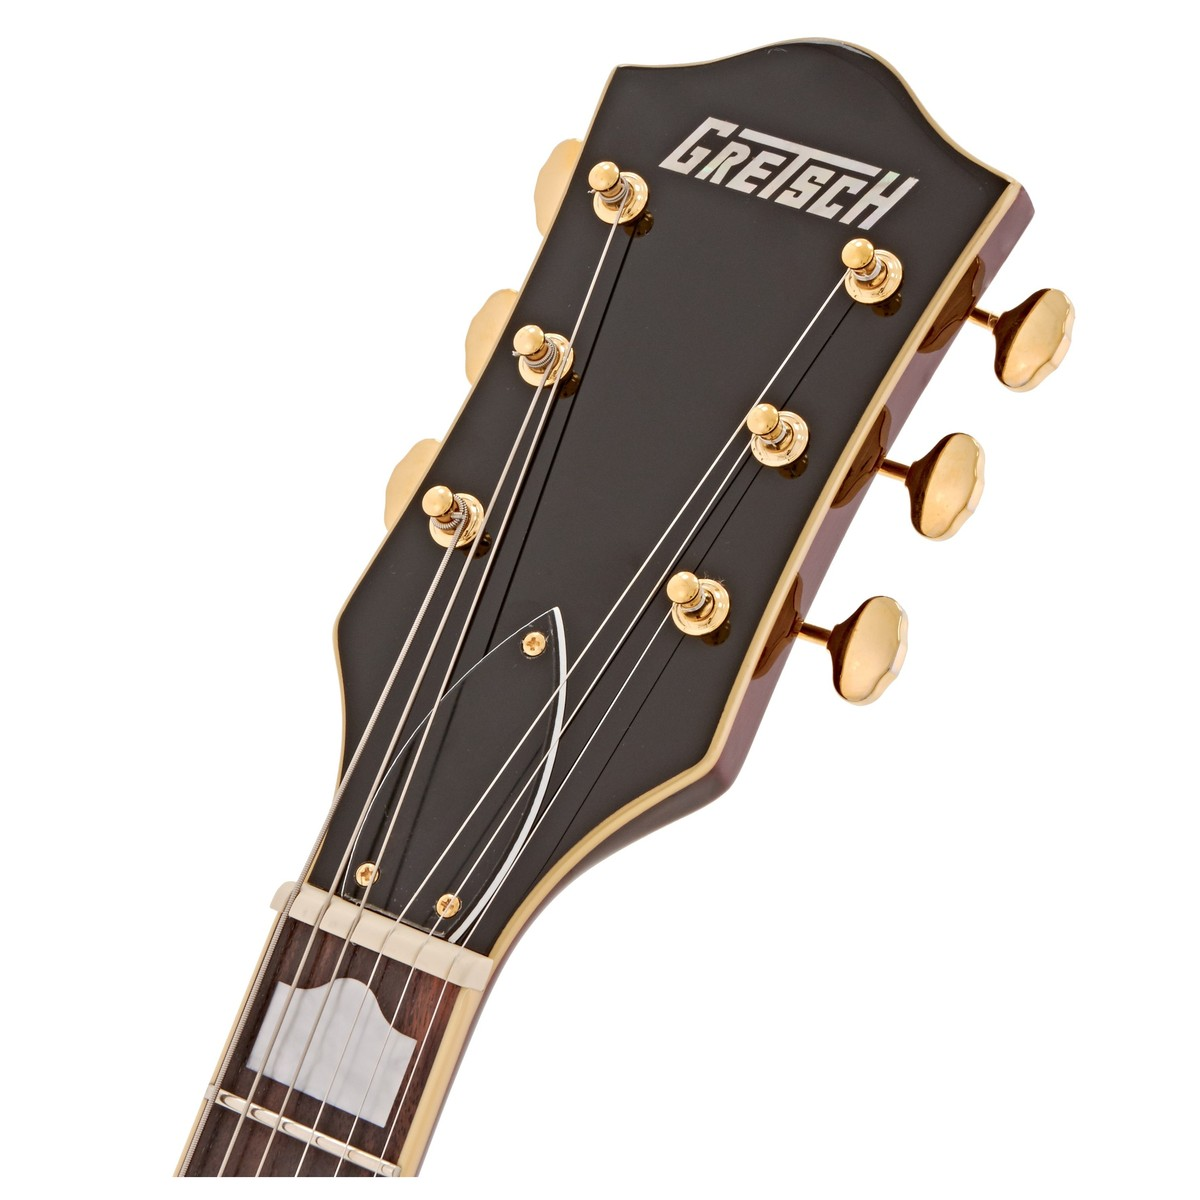 gretsch g5422tg 2016 electromatic hollow body guitar walnut stain at. Black Bedroom Furniture Sets. Home Design Ideas